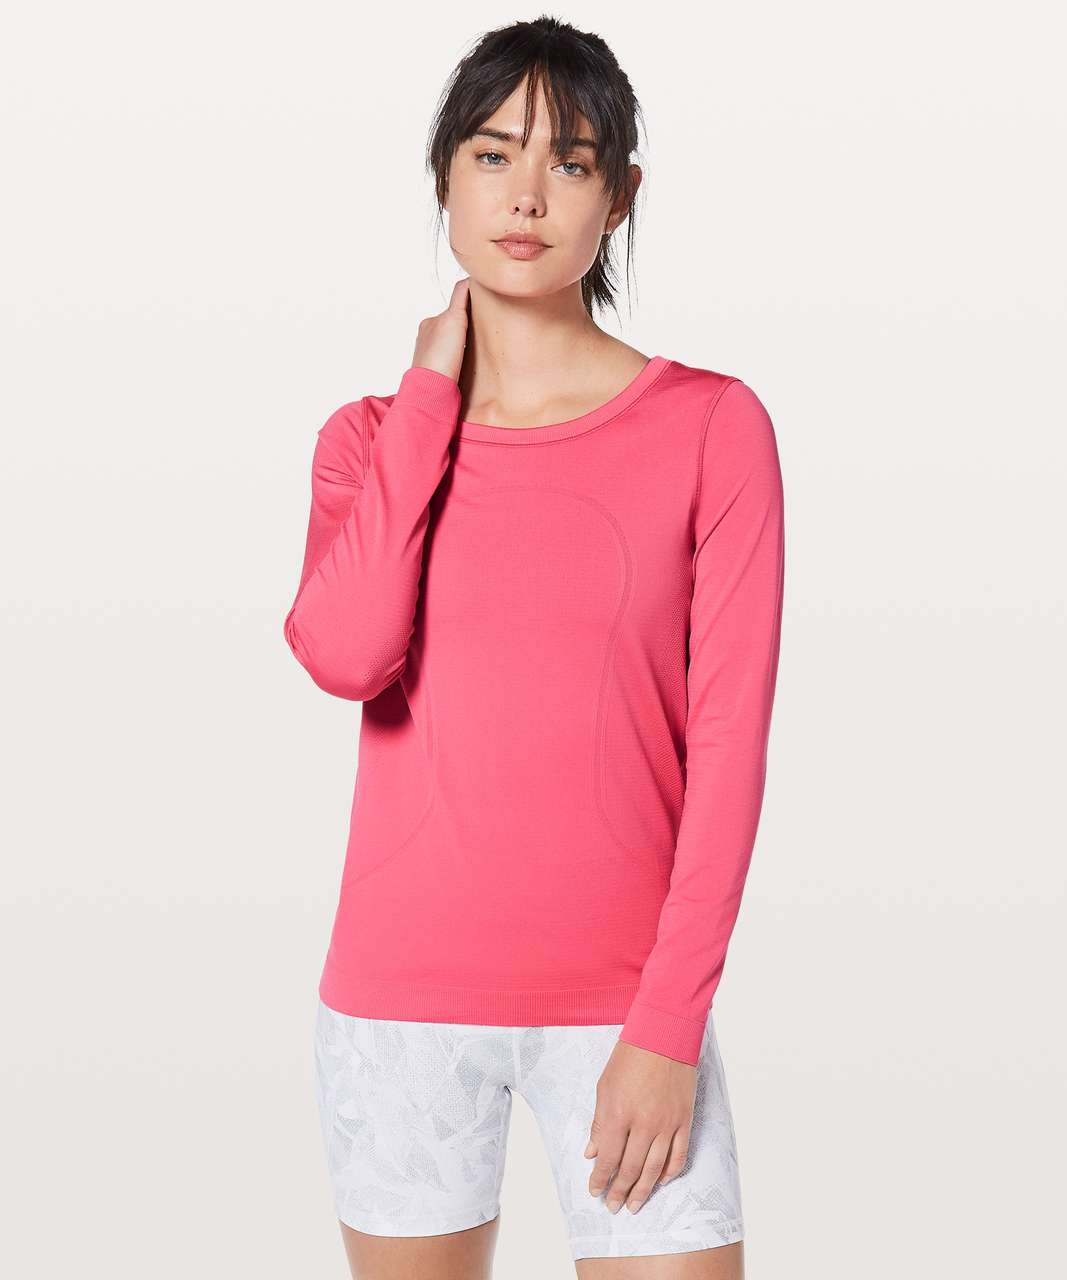 Lululemon Swiftly Tech Long Sleeve (Breeze) *Relaxed Fit - Glossy / Glossy